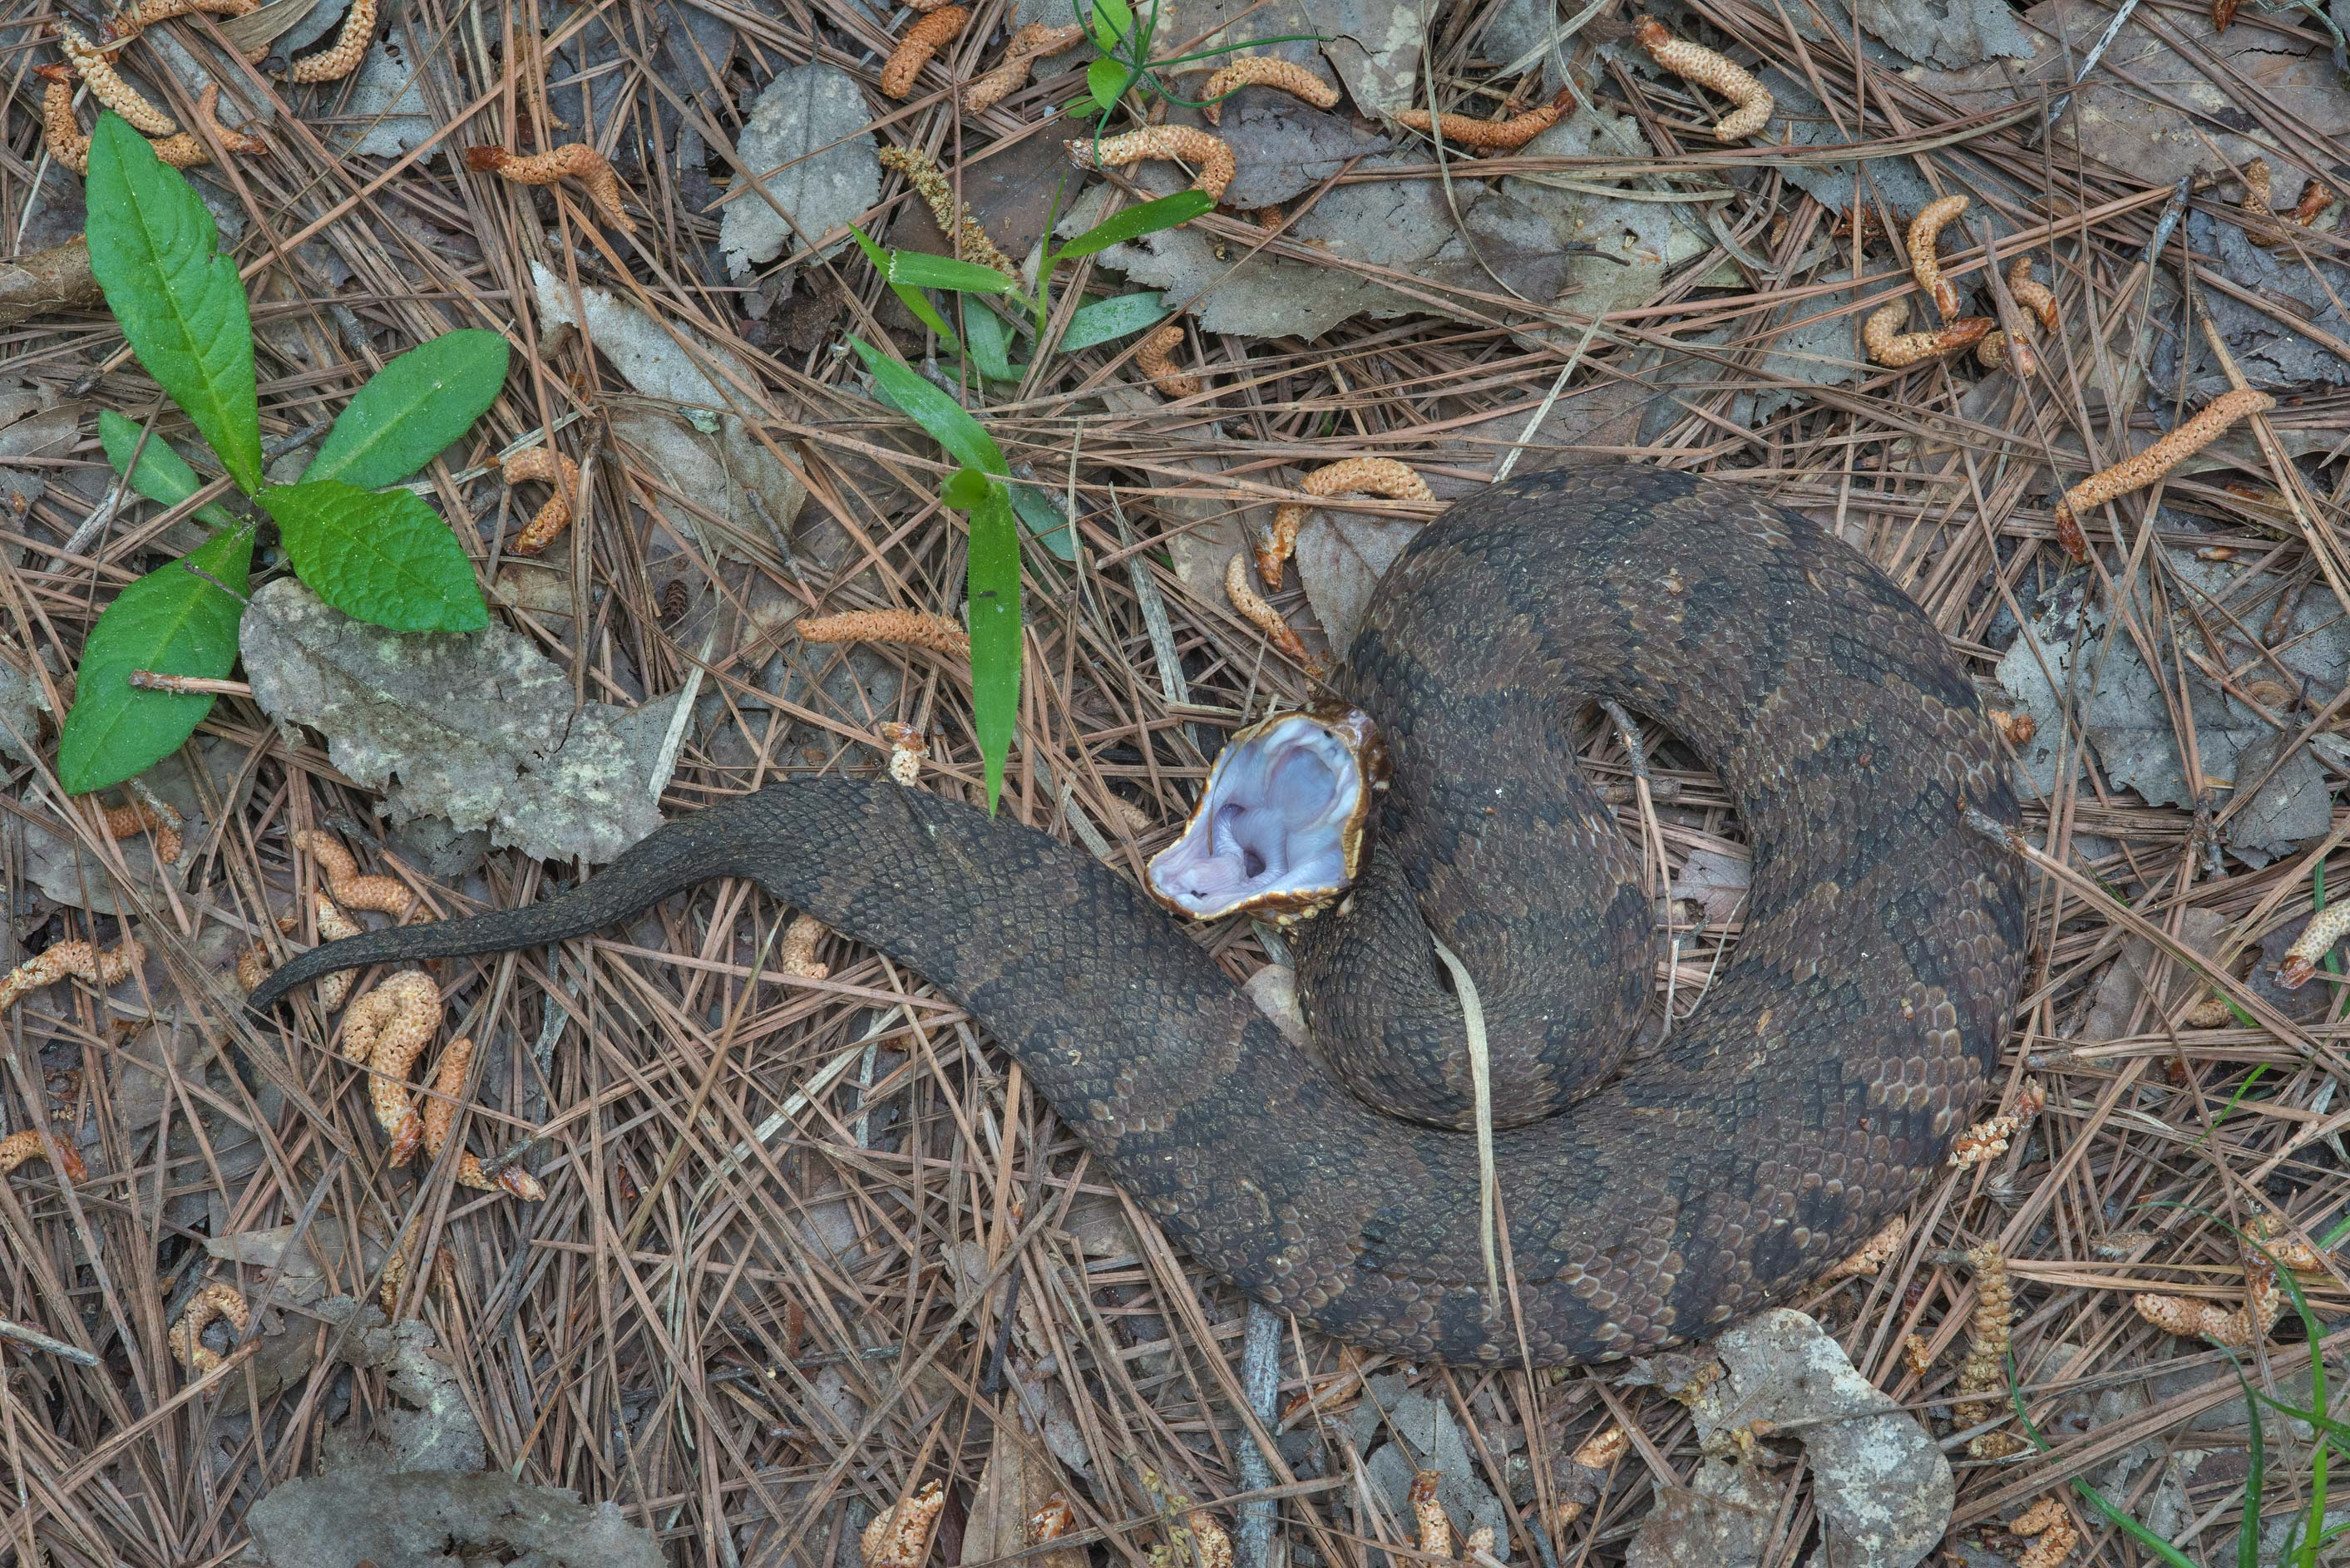 Water Moccasin snake displaying cottonmouth...National Forest near Huntsville, Texas